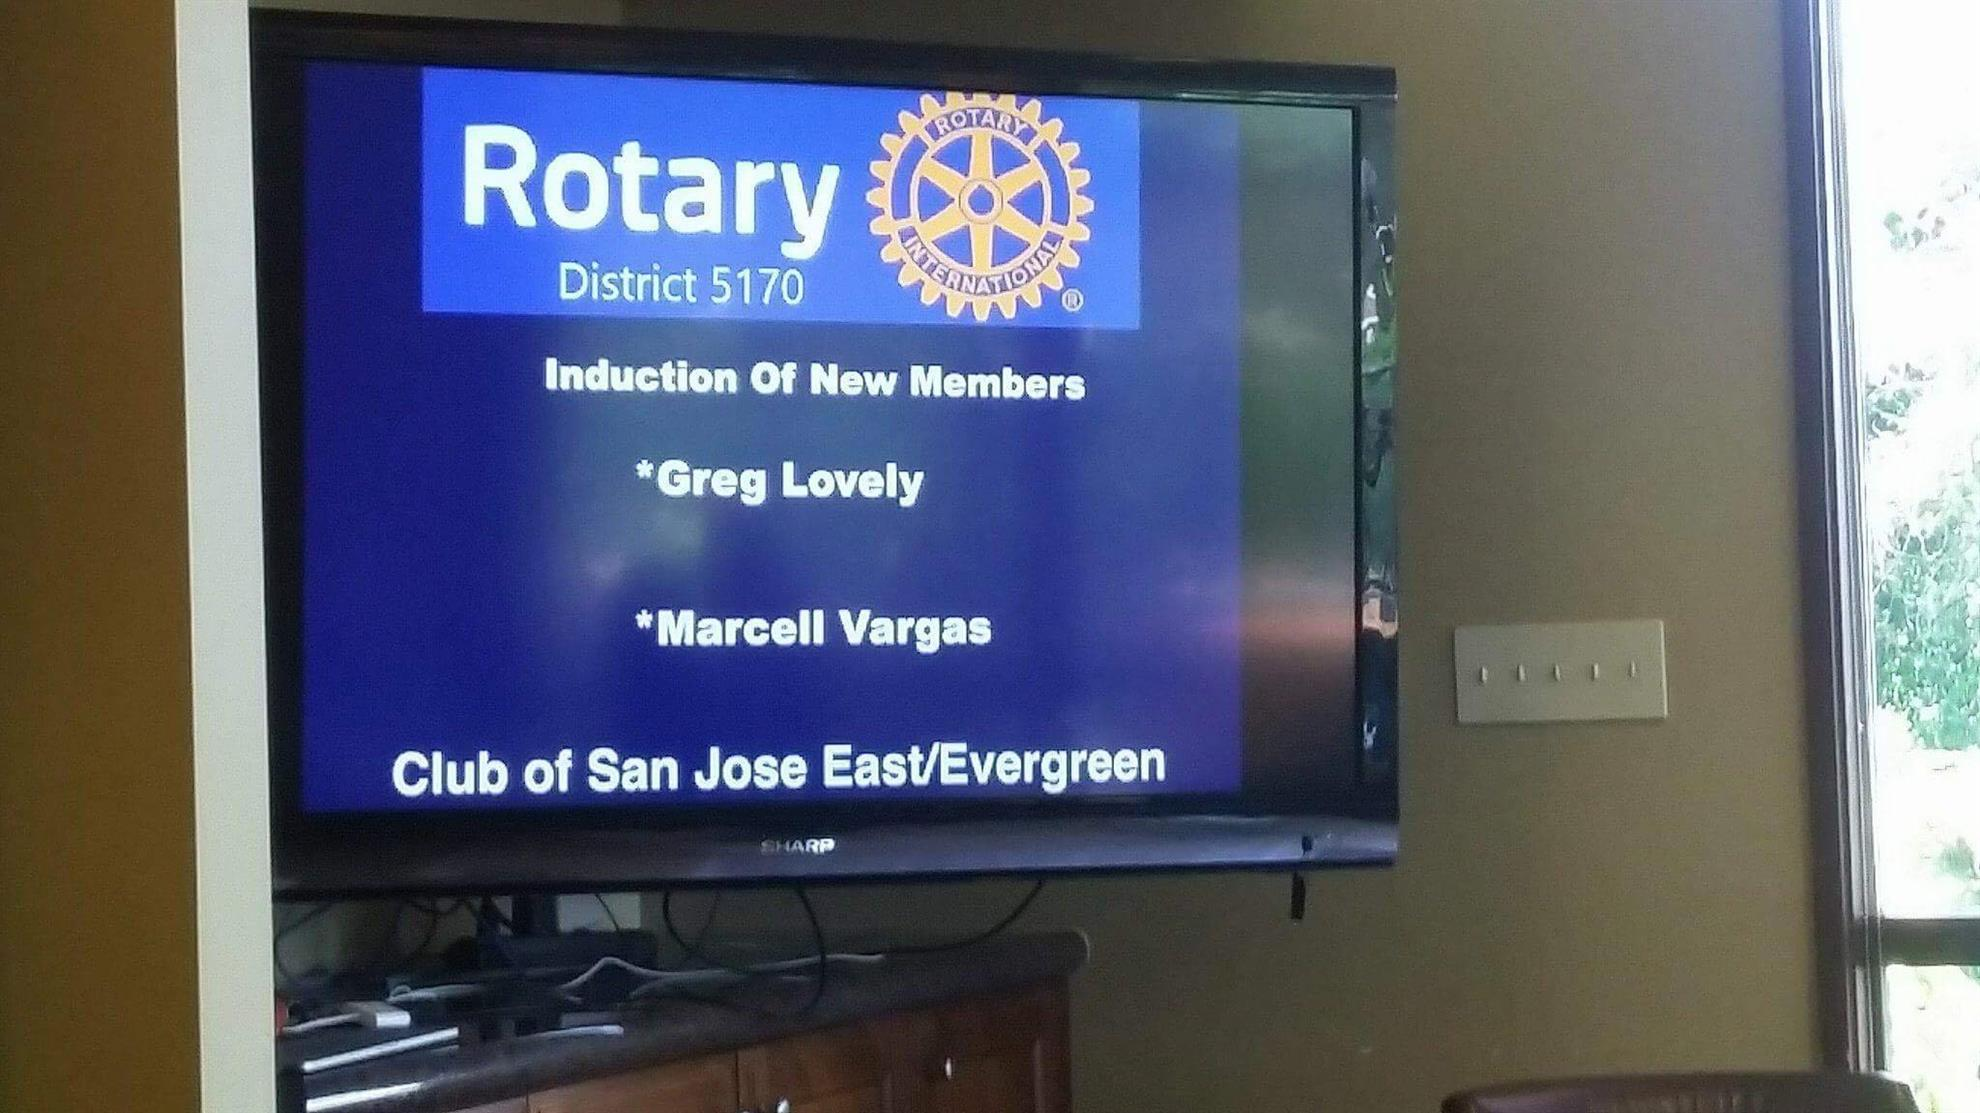 Stories Rotary Club Of San Jose East Evergreen Welcome To Cheap Led Hoops The Best Resource Online Help You Find A Special Opportunity People Into Your This Is Memorable Experience And In Ceremony President Lets New Membesr Know That